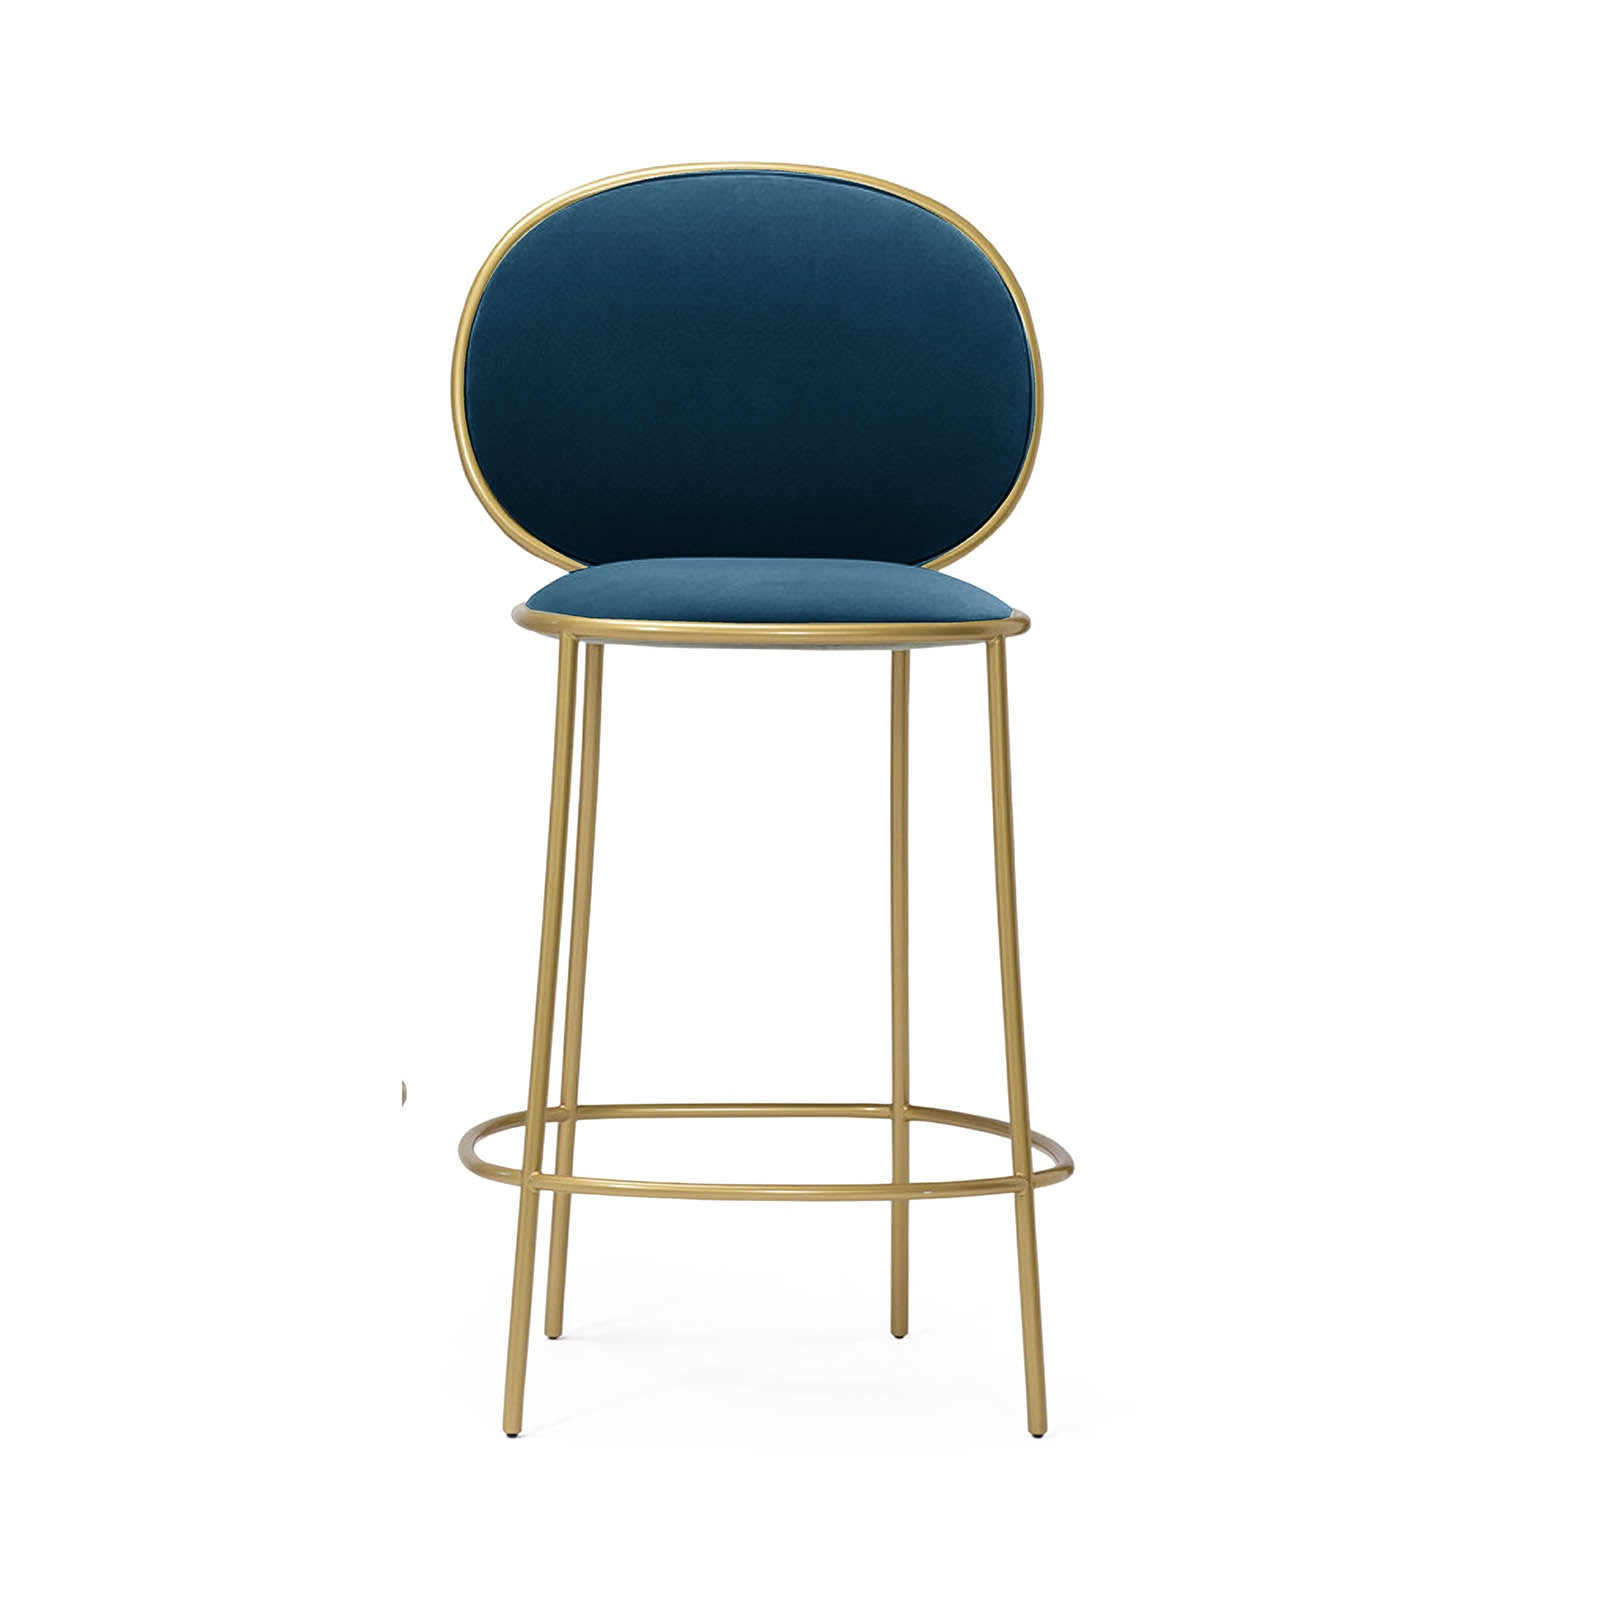 Velletri  bar stool  TG-201